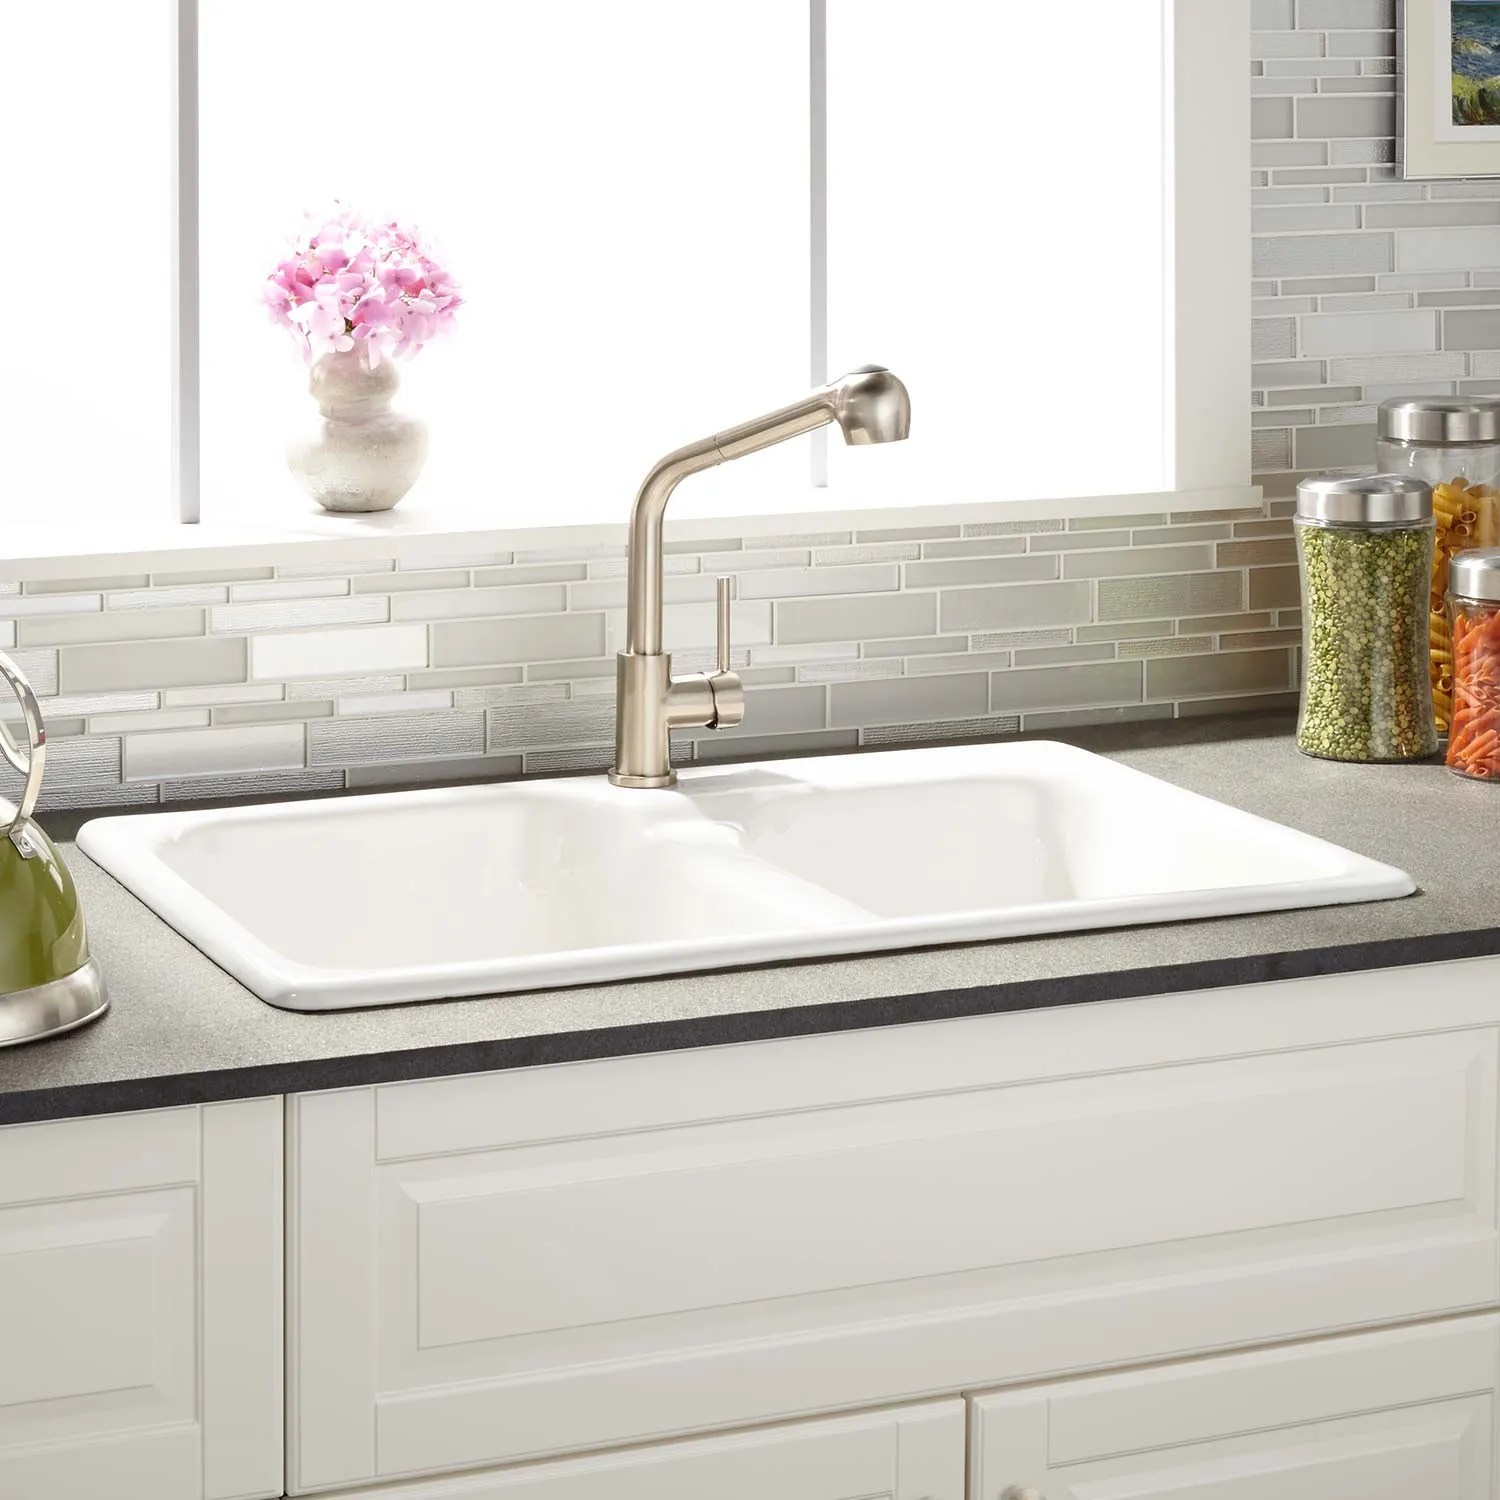 White Kitchen Faucets 4 Hole